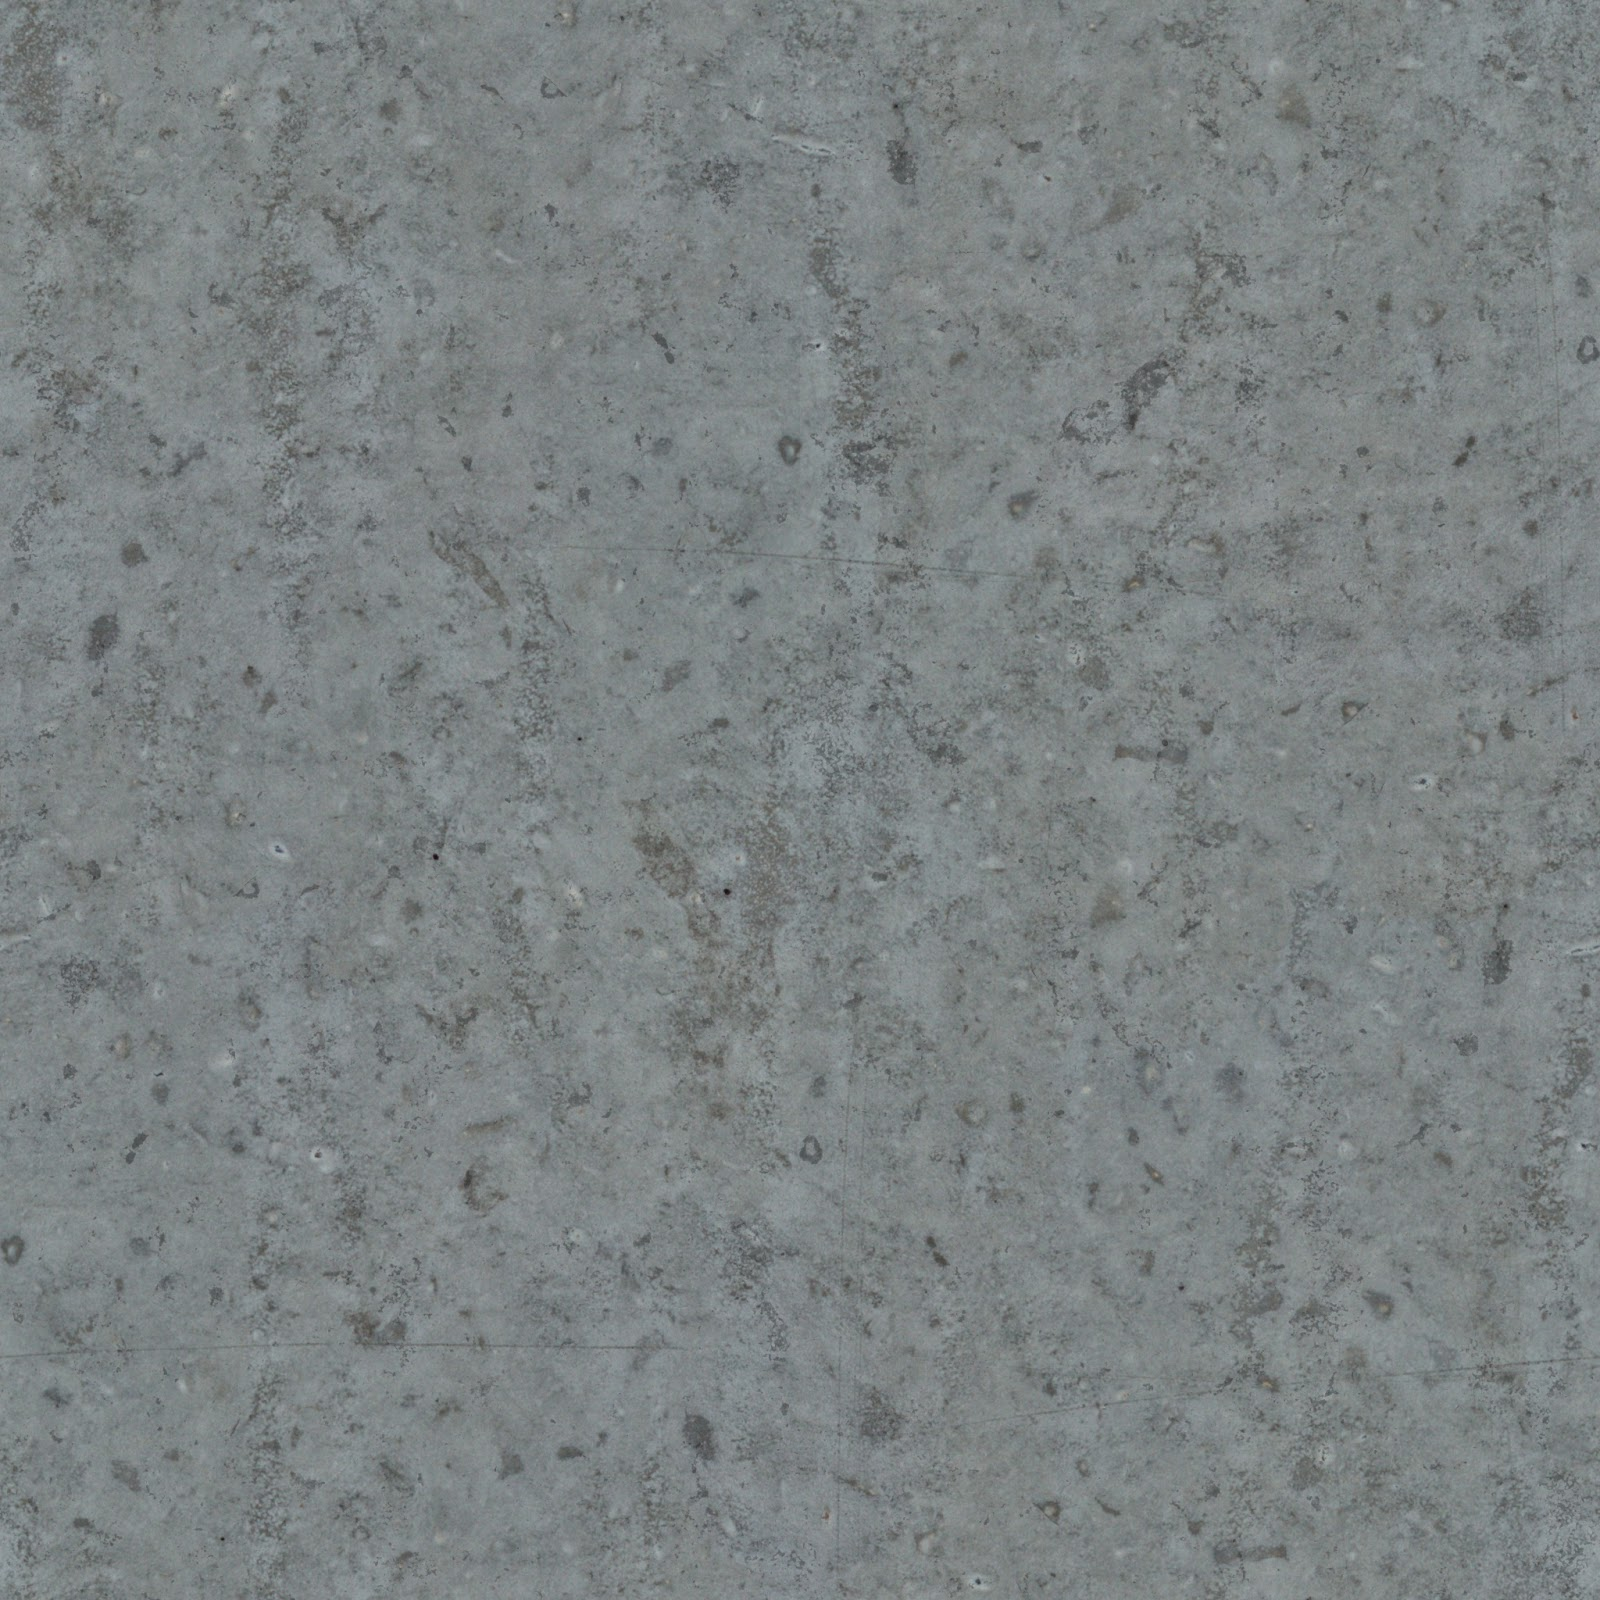 High resolution seamless textures september 2014 for Smooth concrete texture